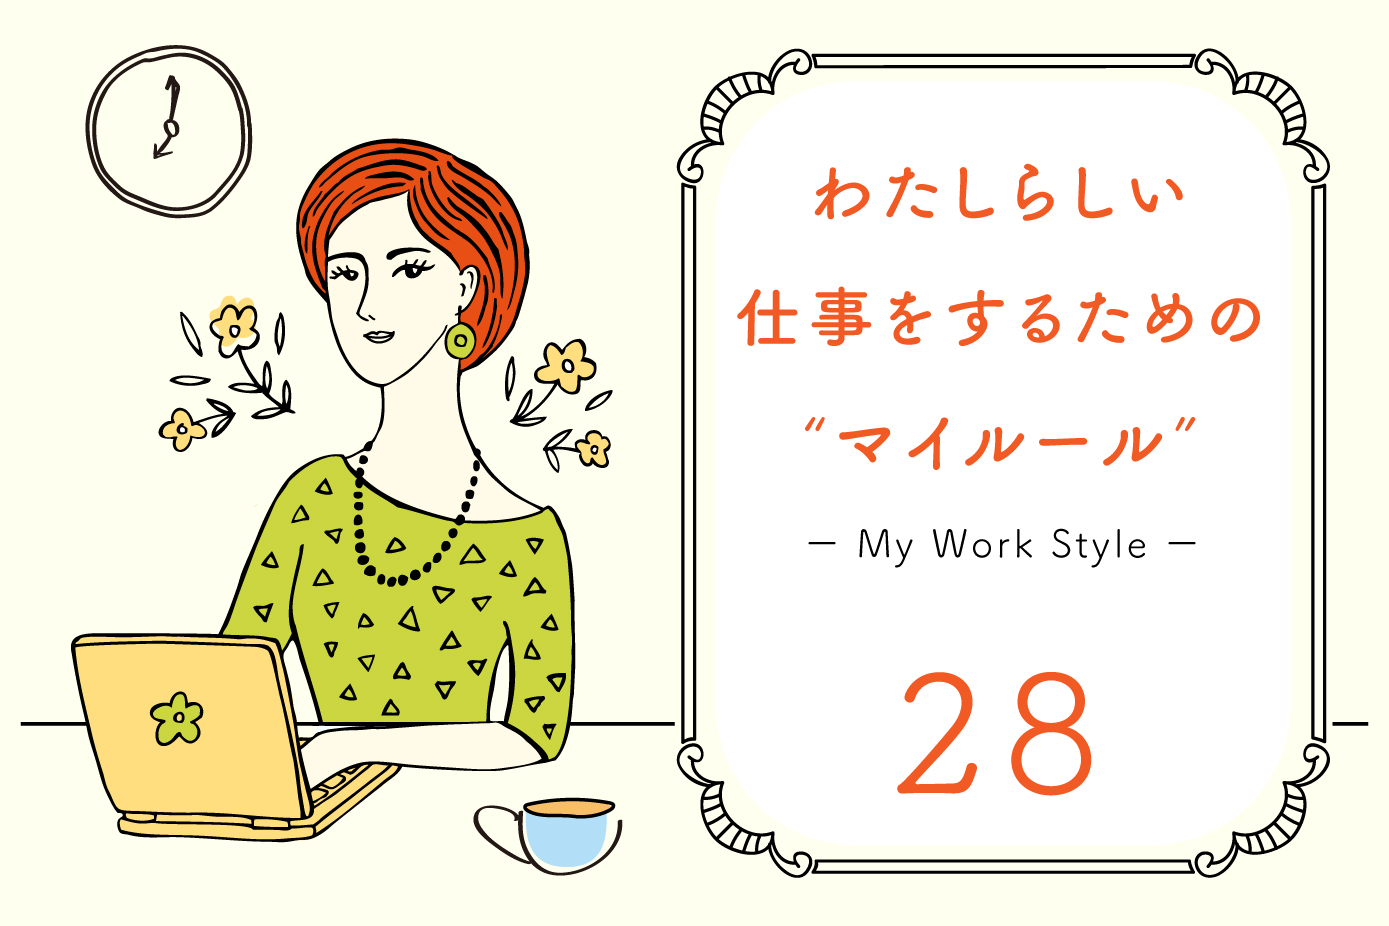 WorkStyle_マイルール_28